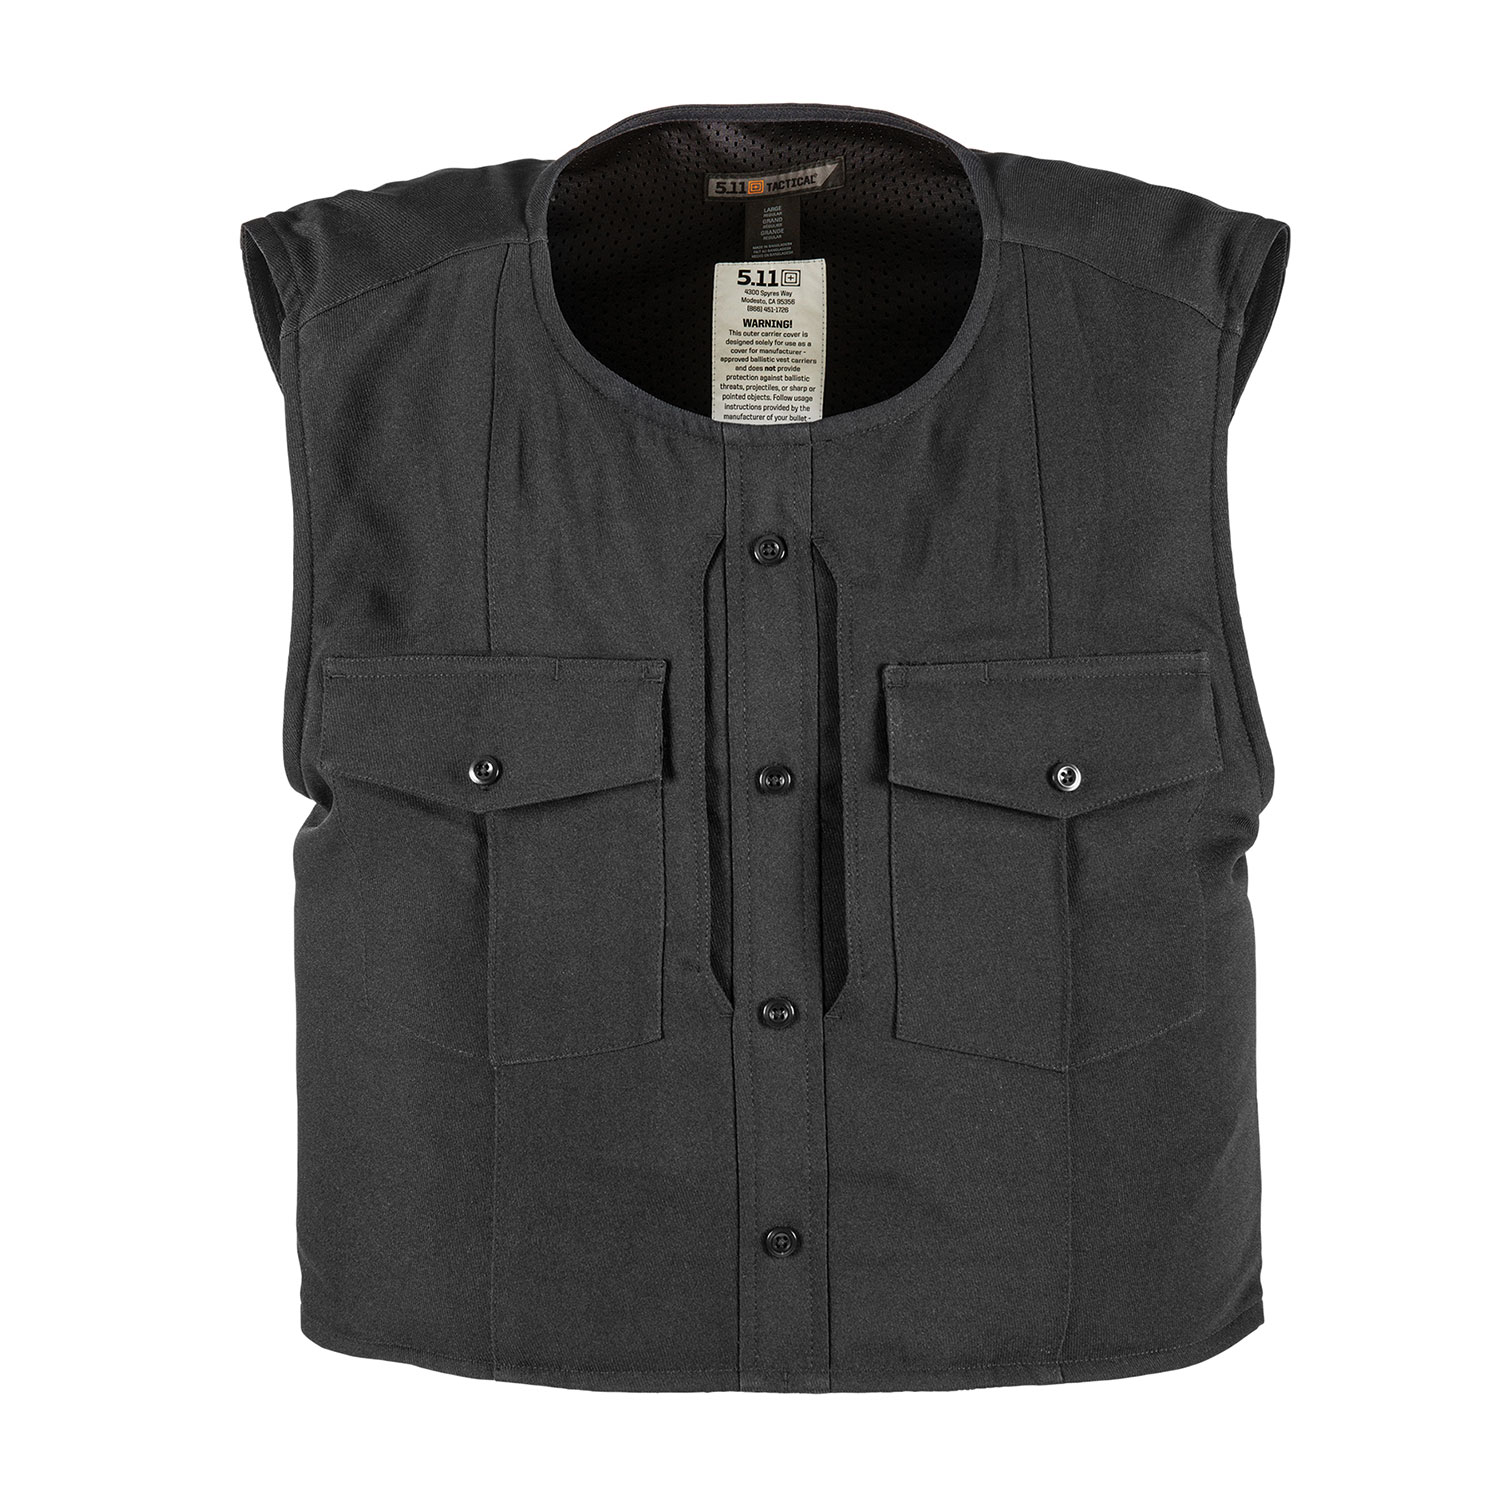 5.11 Class B Uniform Outer Vest Carrier